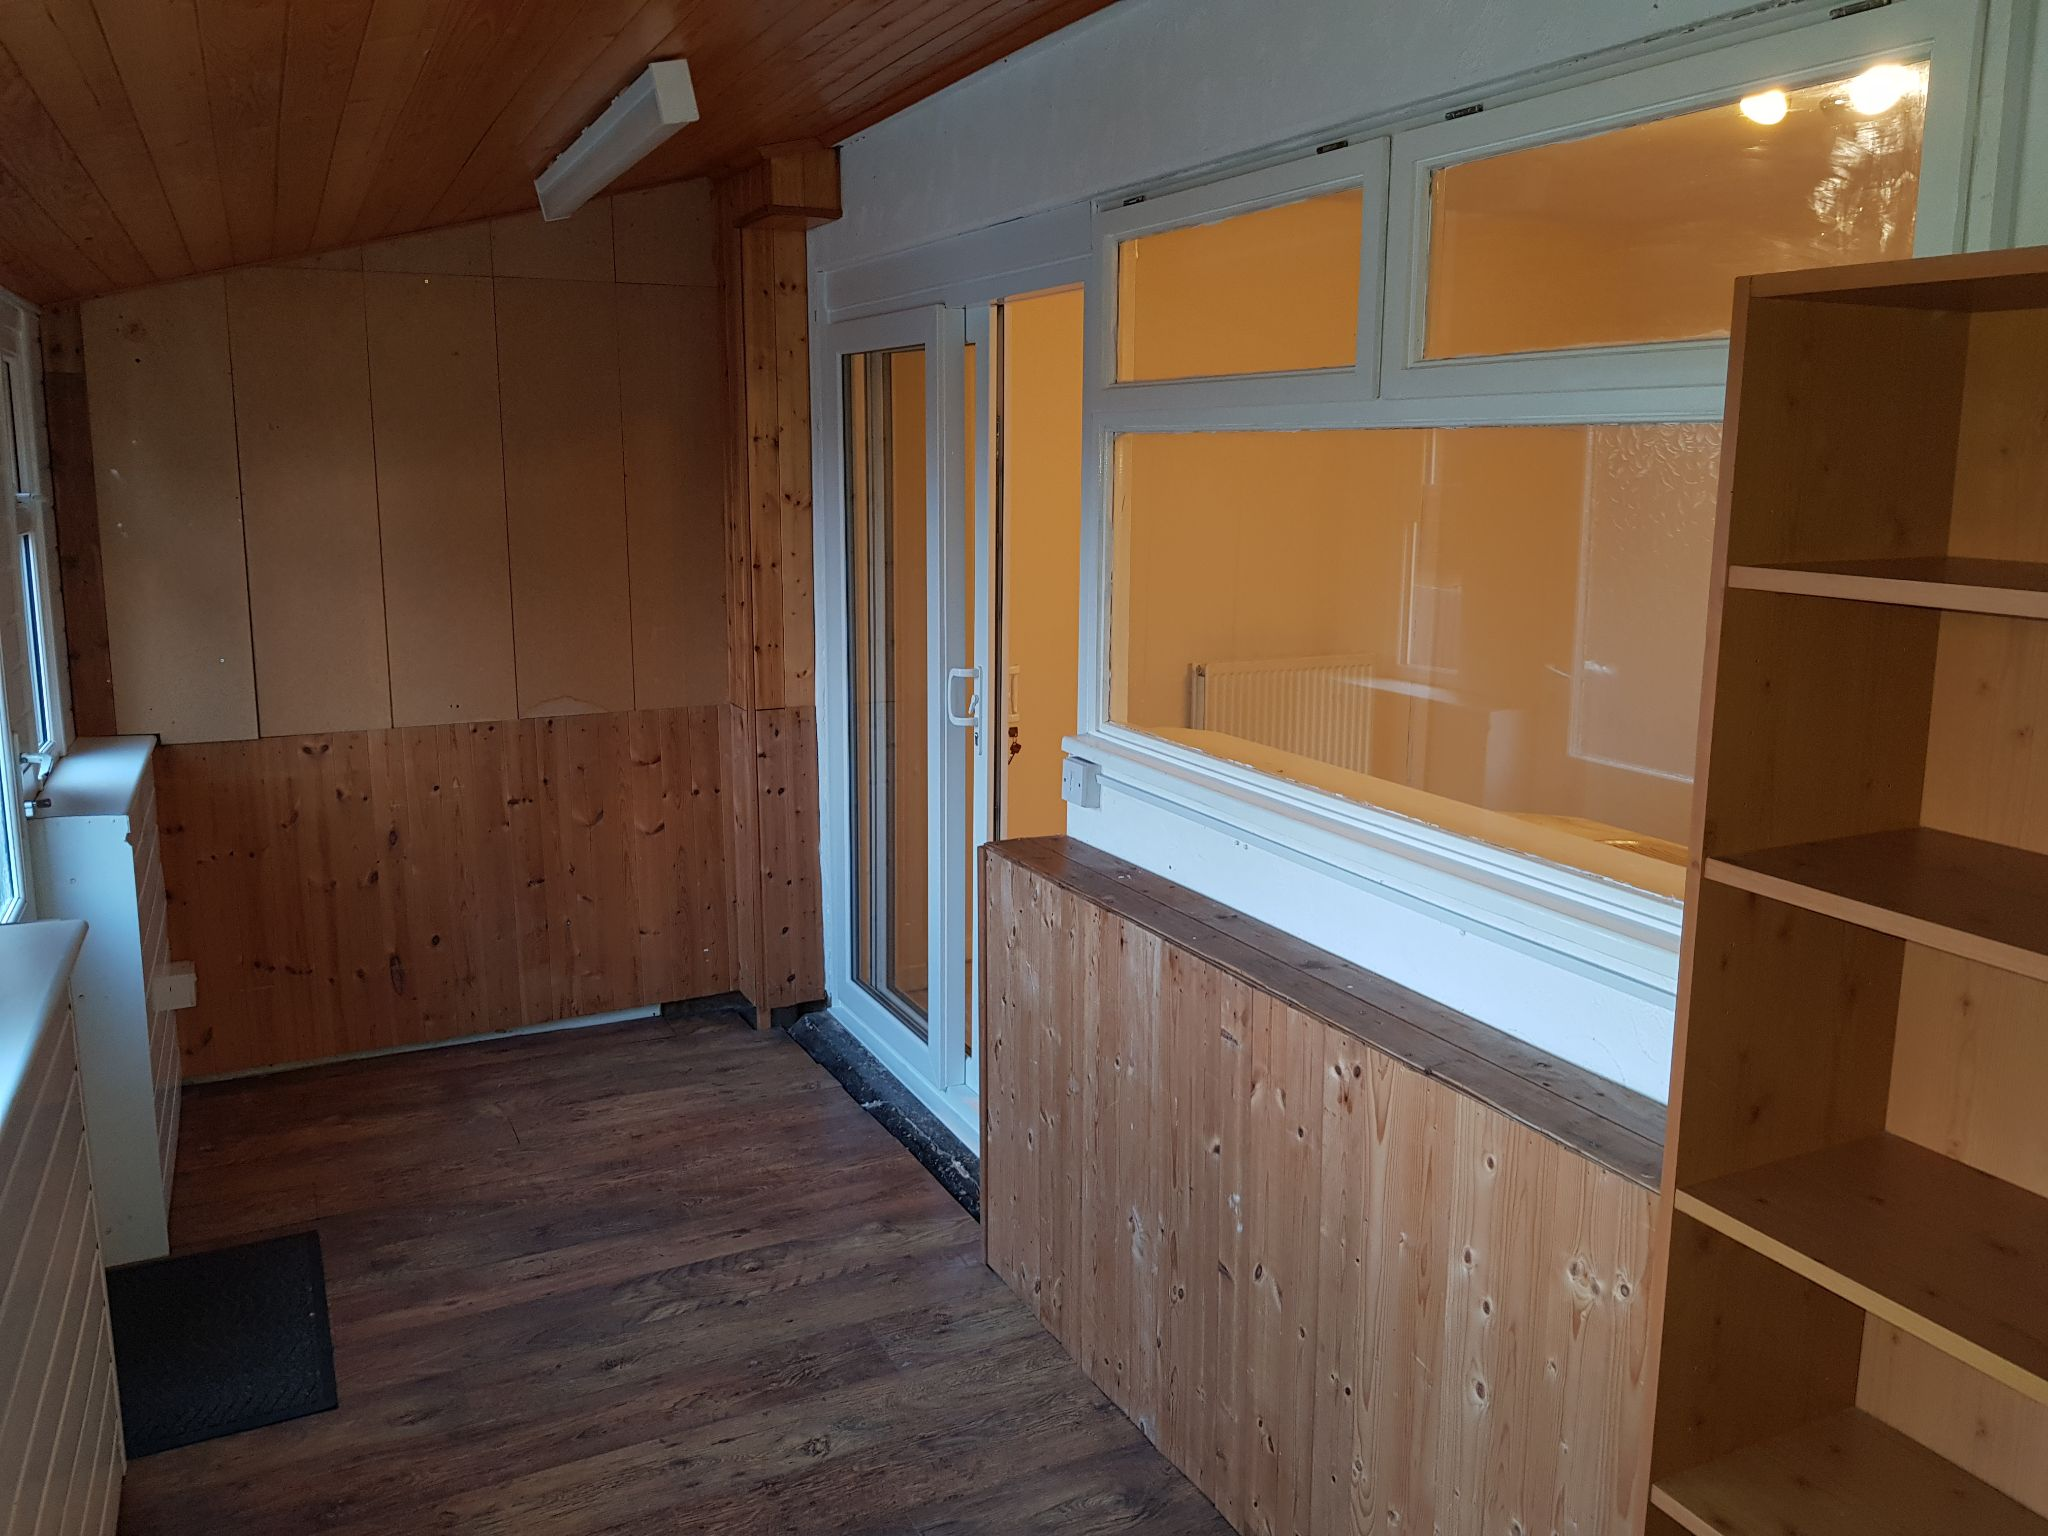 2 Bedroom Mid Terraced House To Rent - Utility